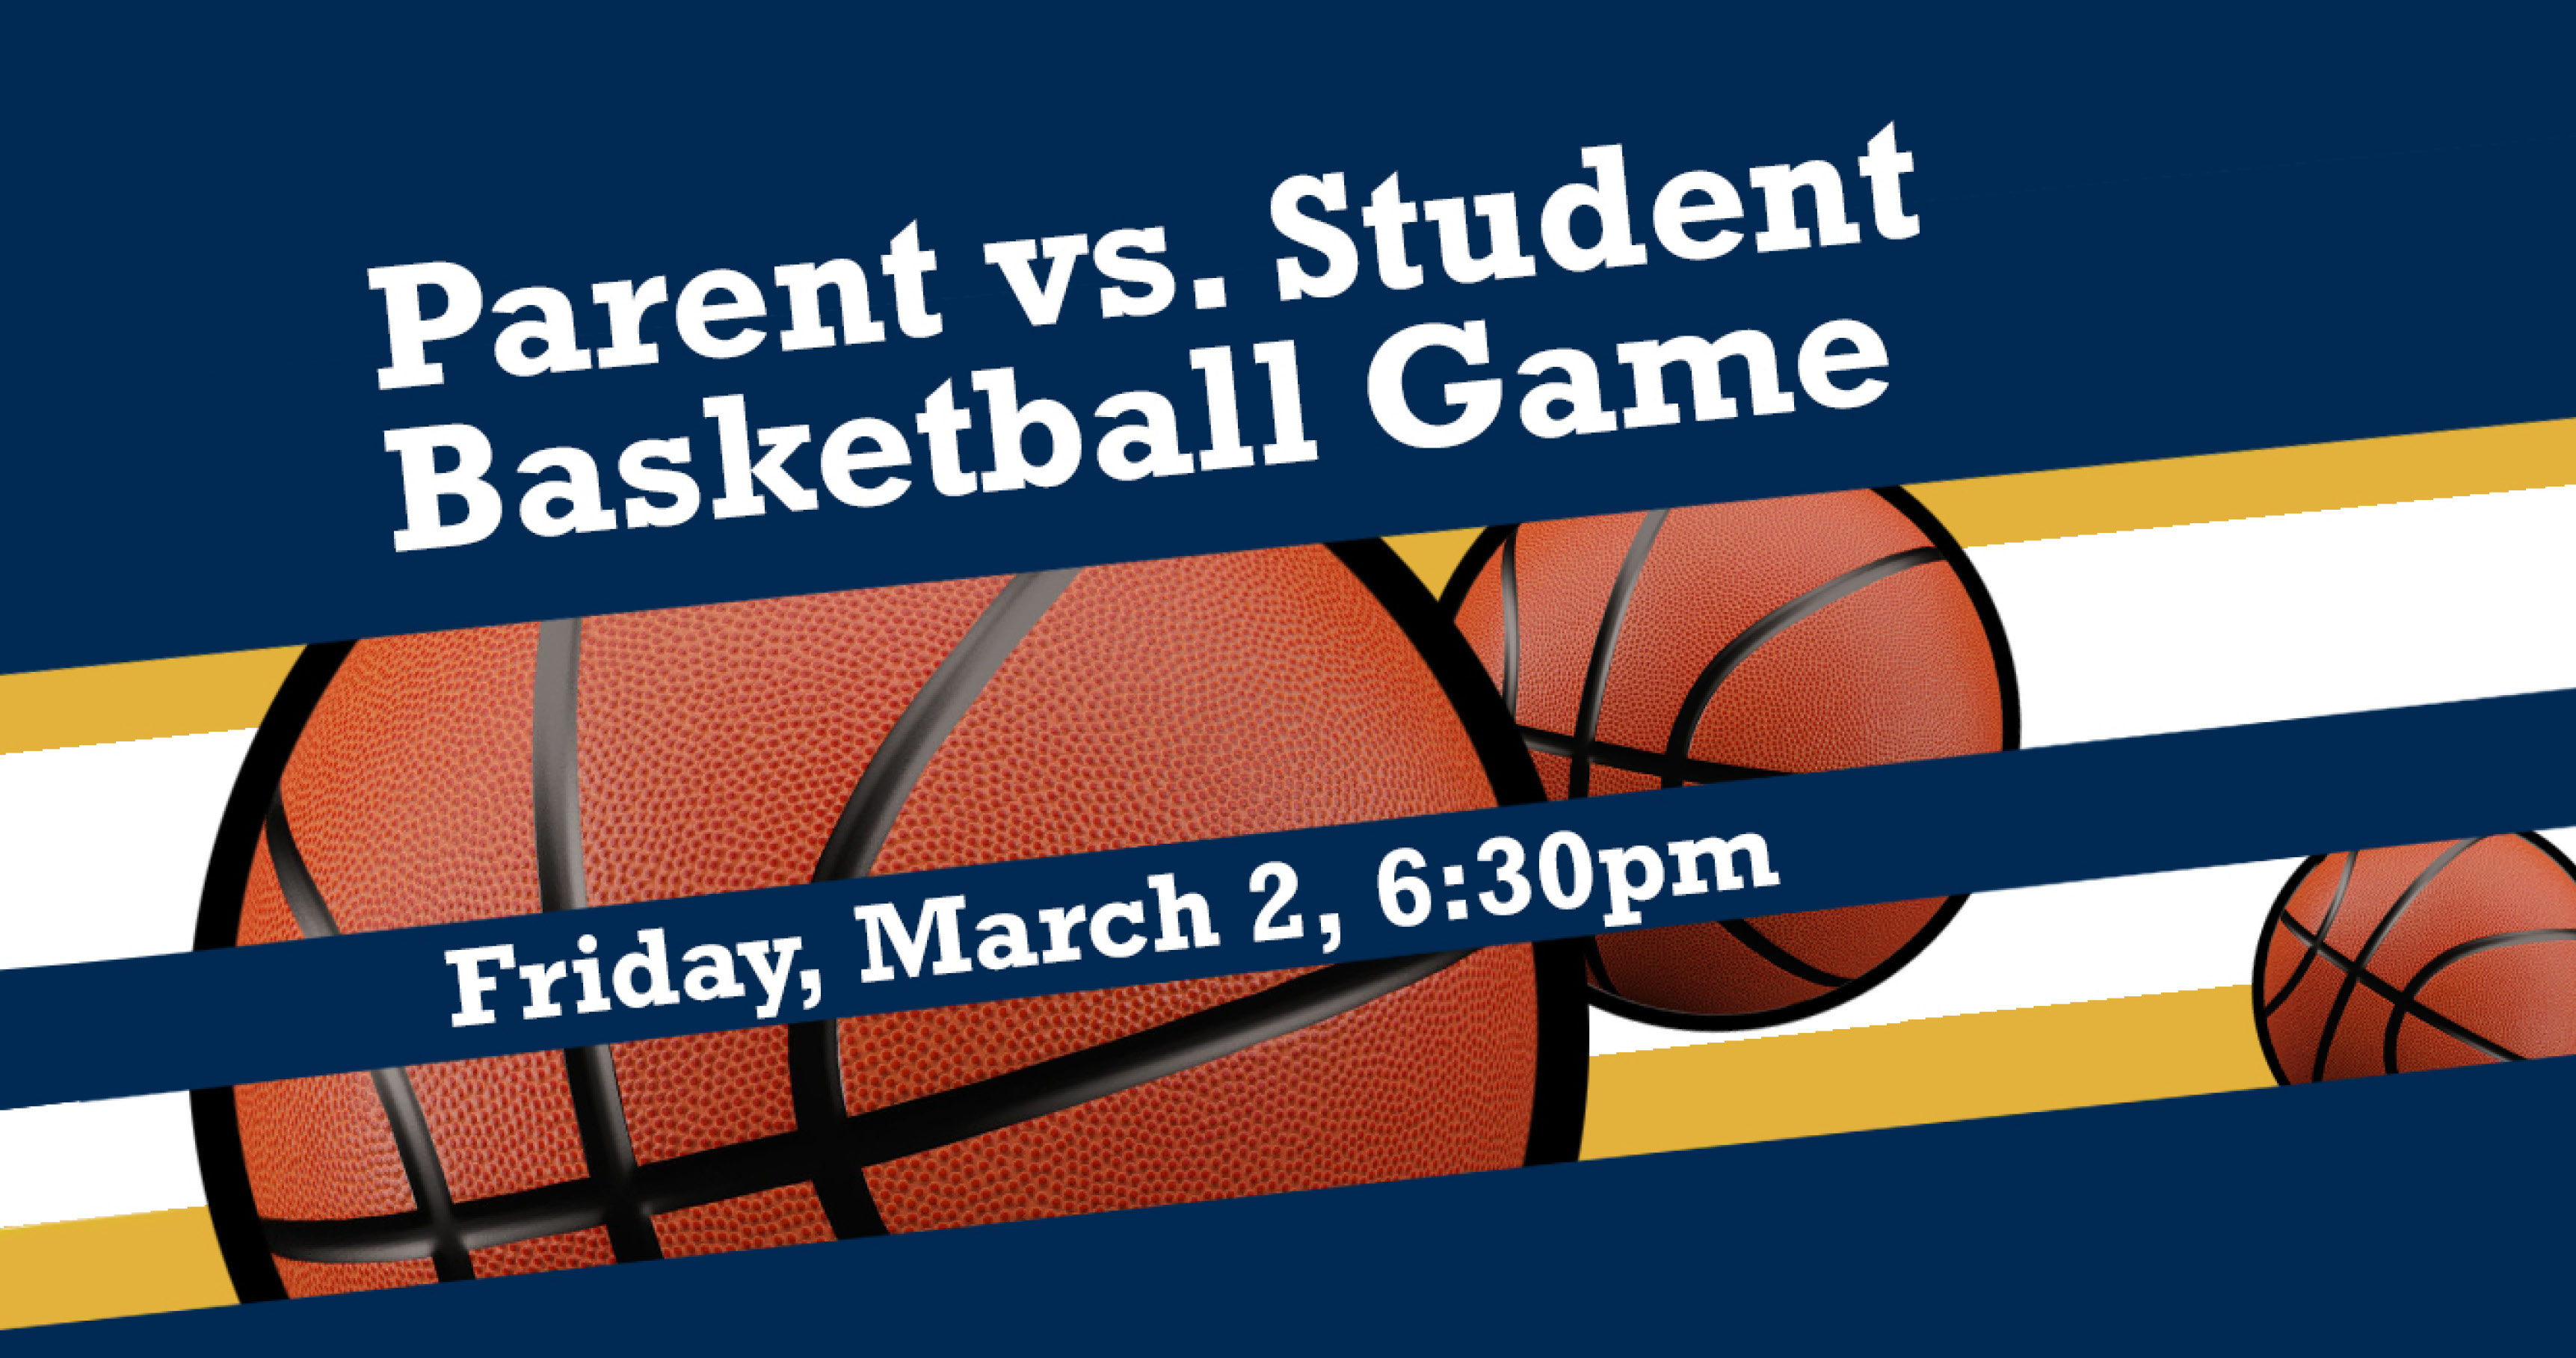 Parent Student Basketball Game